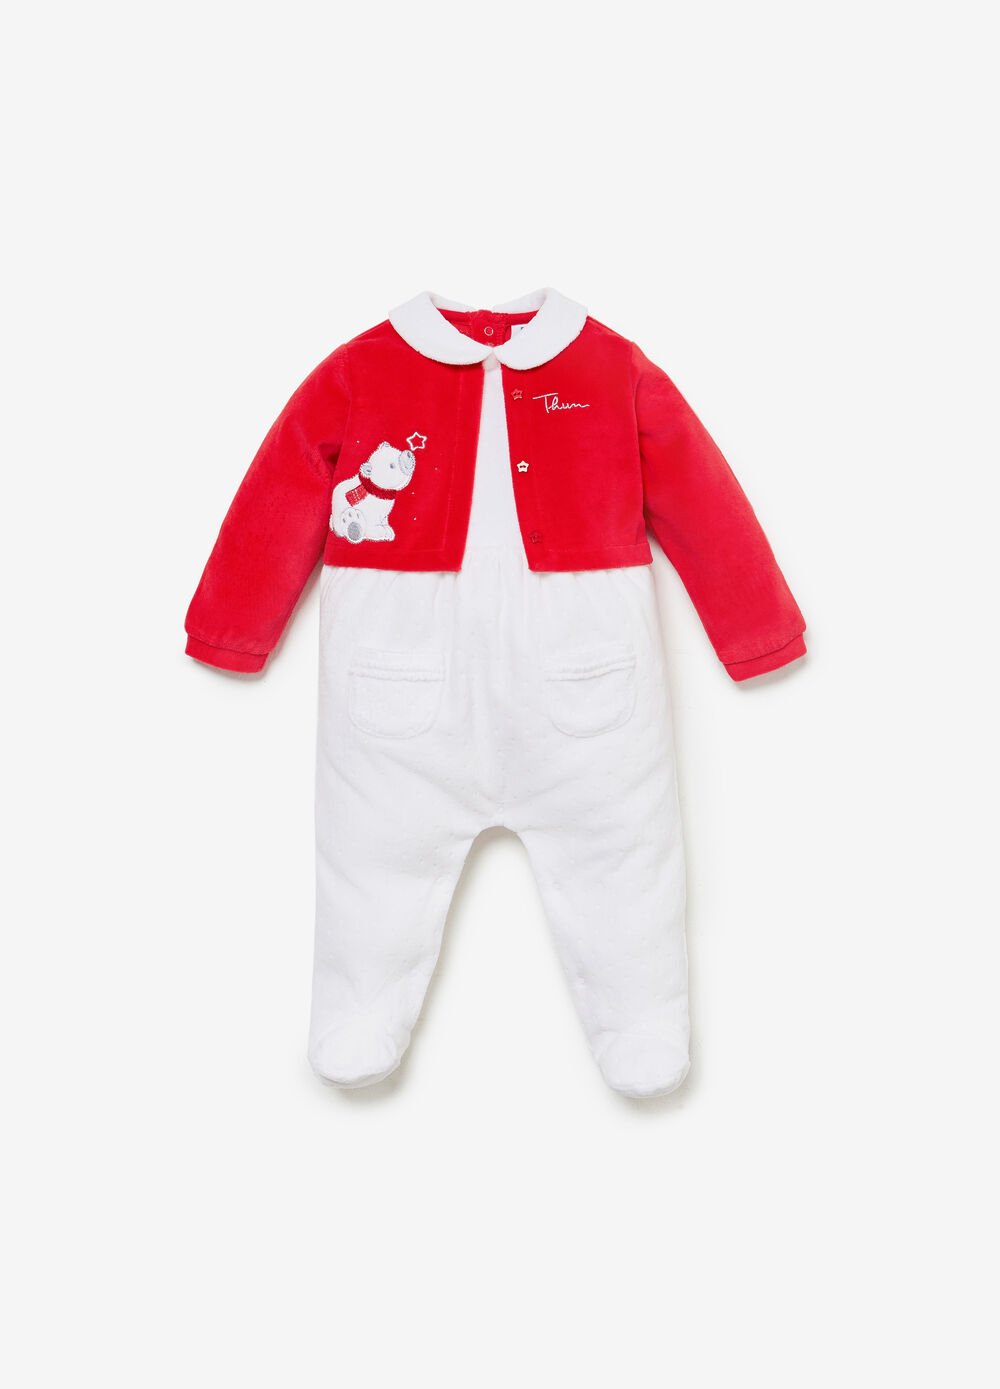 THUN polar bear romper suit in two tone organic cotton